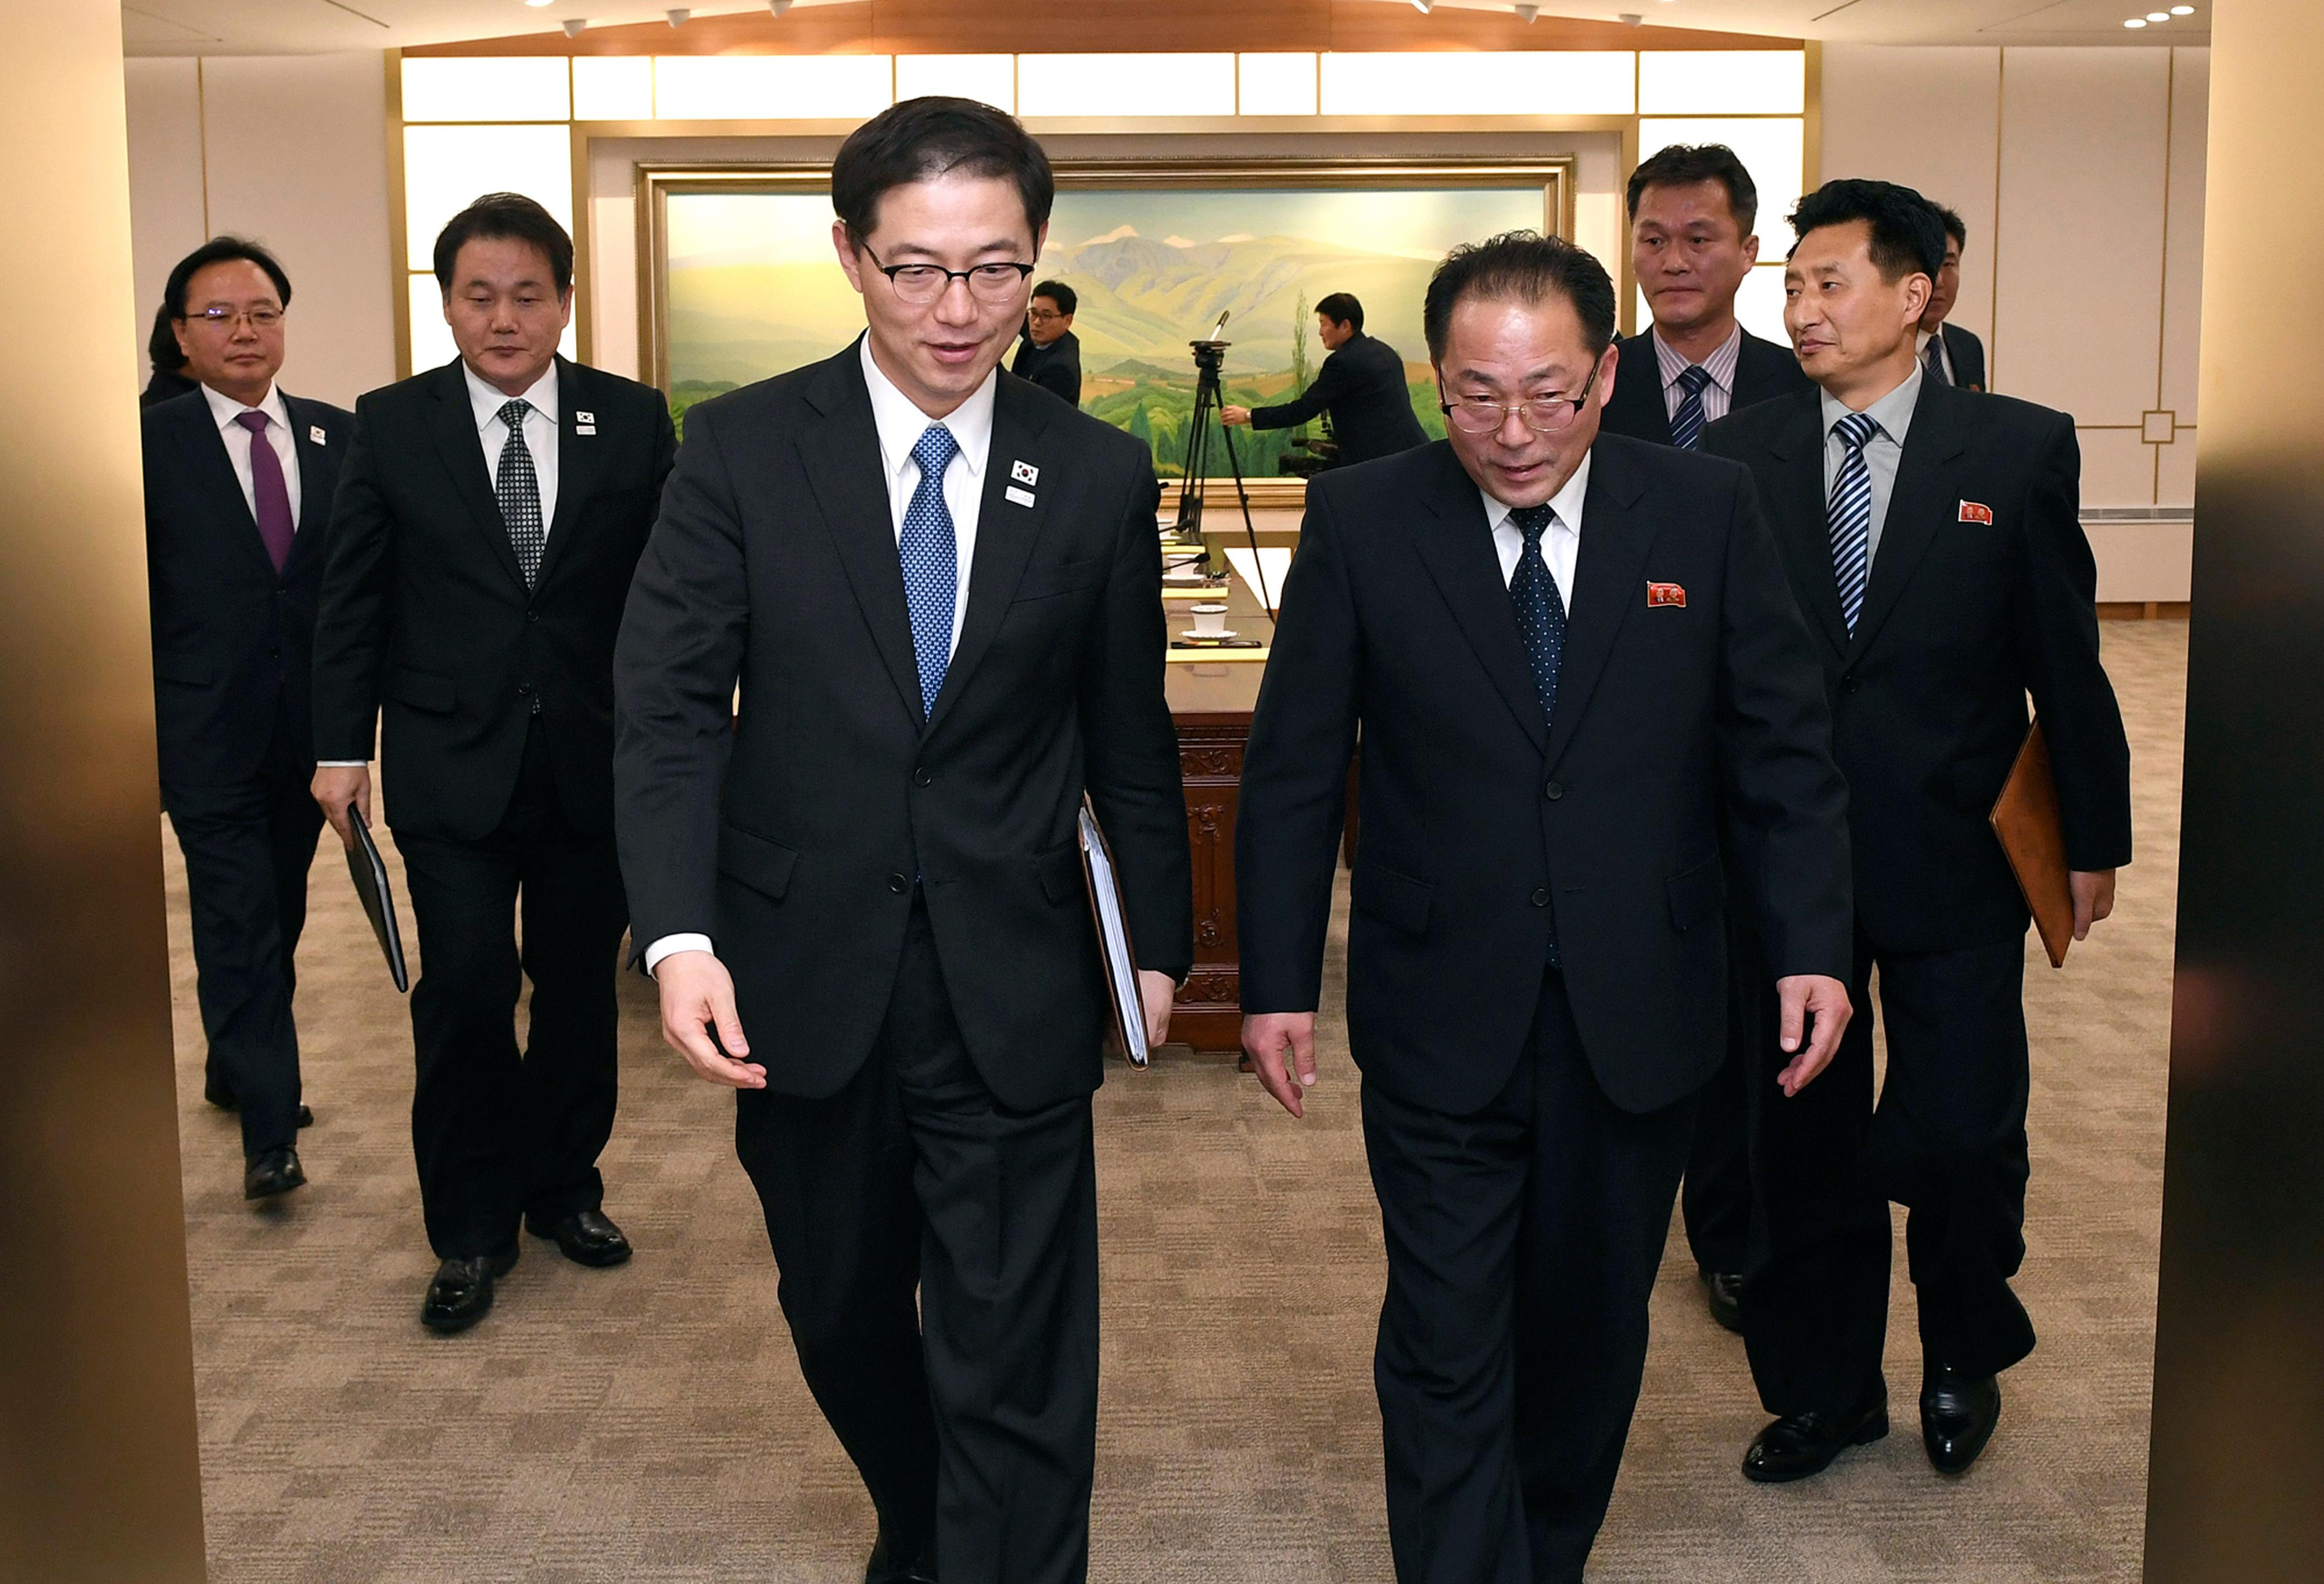 In this photo provided by South Korea Unification Ministry, South Korean Vice Unification Minister Chun Hae-sung, center left, and the head of North Korean delegation Jon Jong Su leave after a meeting at Panmunjom in the Demilitarized Zone in Paju, South Korea, Wednesday, Jan. 17, 2018. The rival Koreas agreed Wednesday to form their first unified Olympic team and have their athletes parade together during the opening ceremony of next month's Winter Olympics in the South, Seoul officials said. (South Korea Unification Ministry via AP)